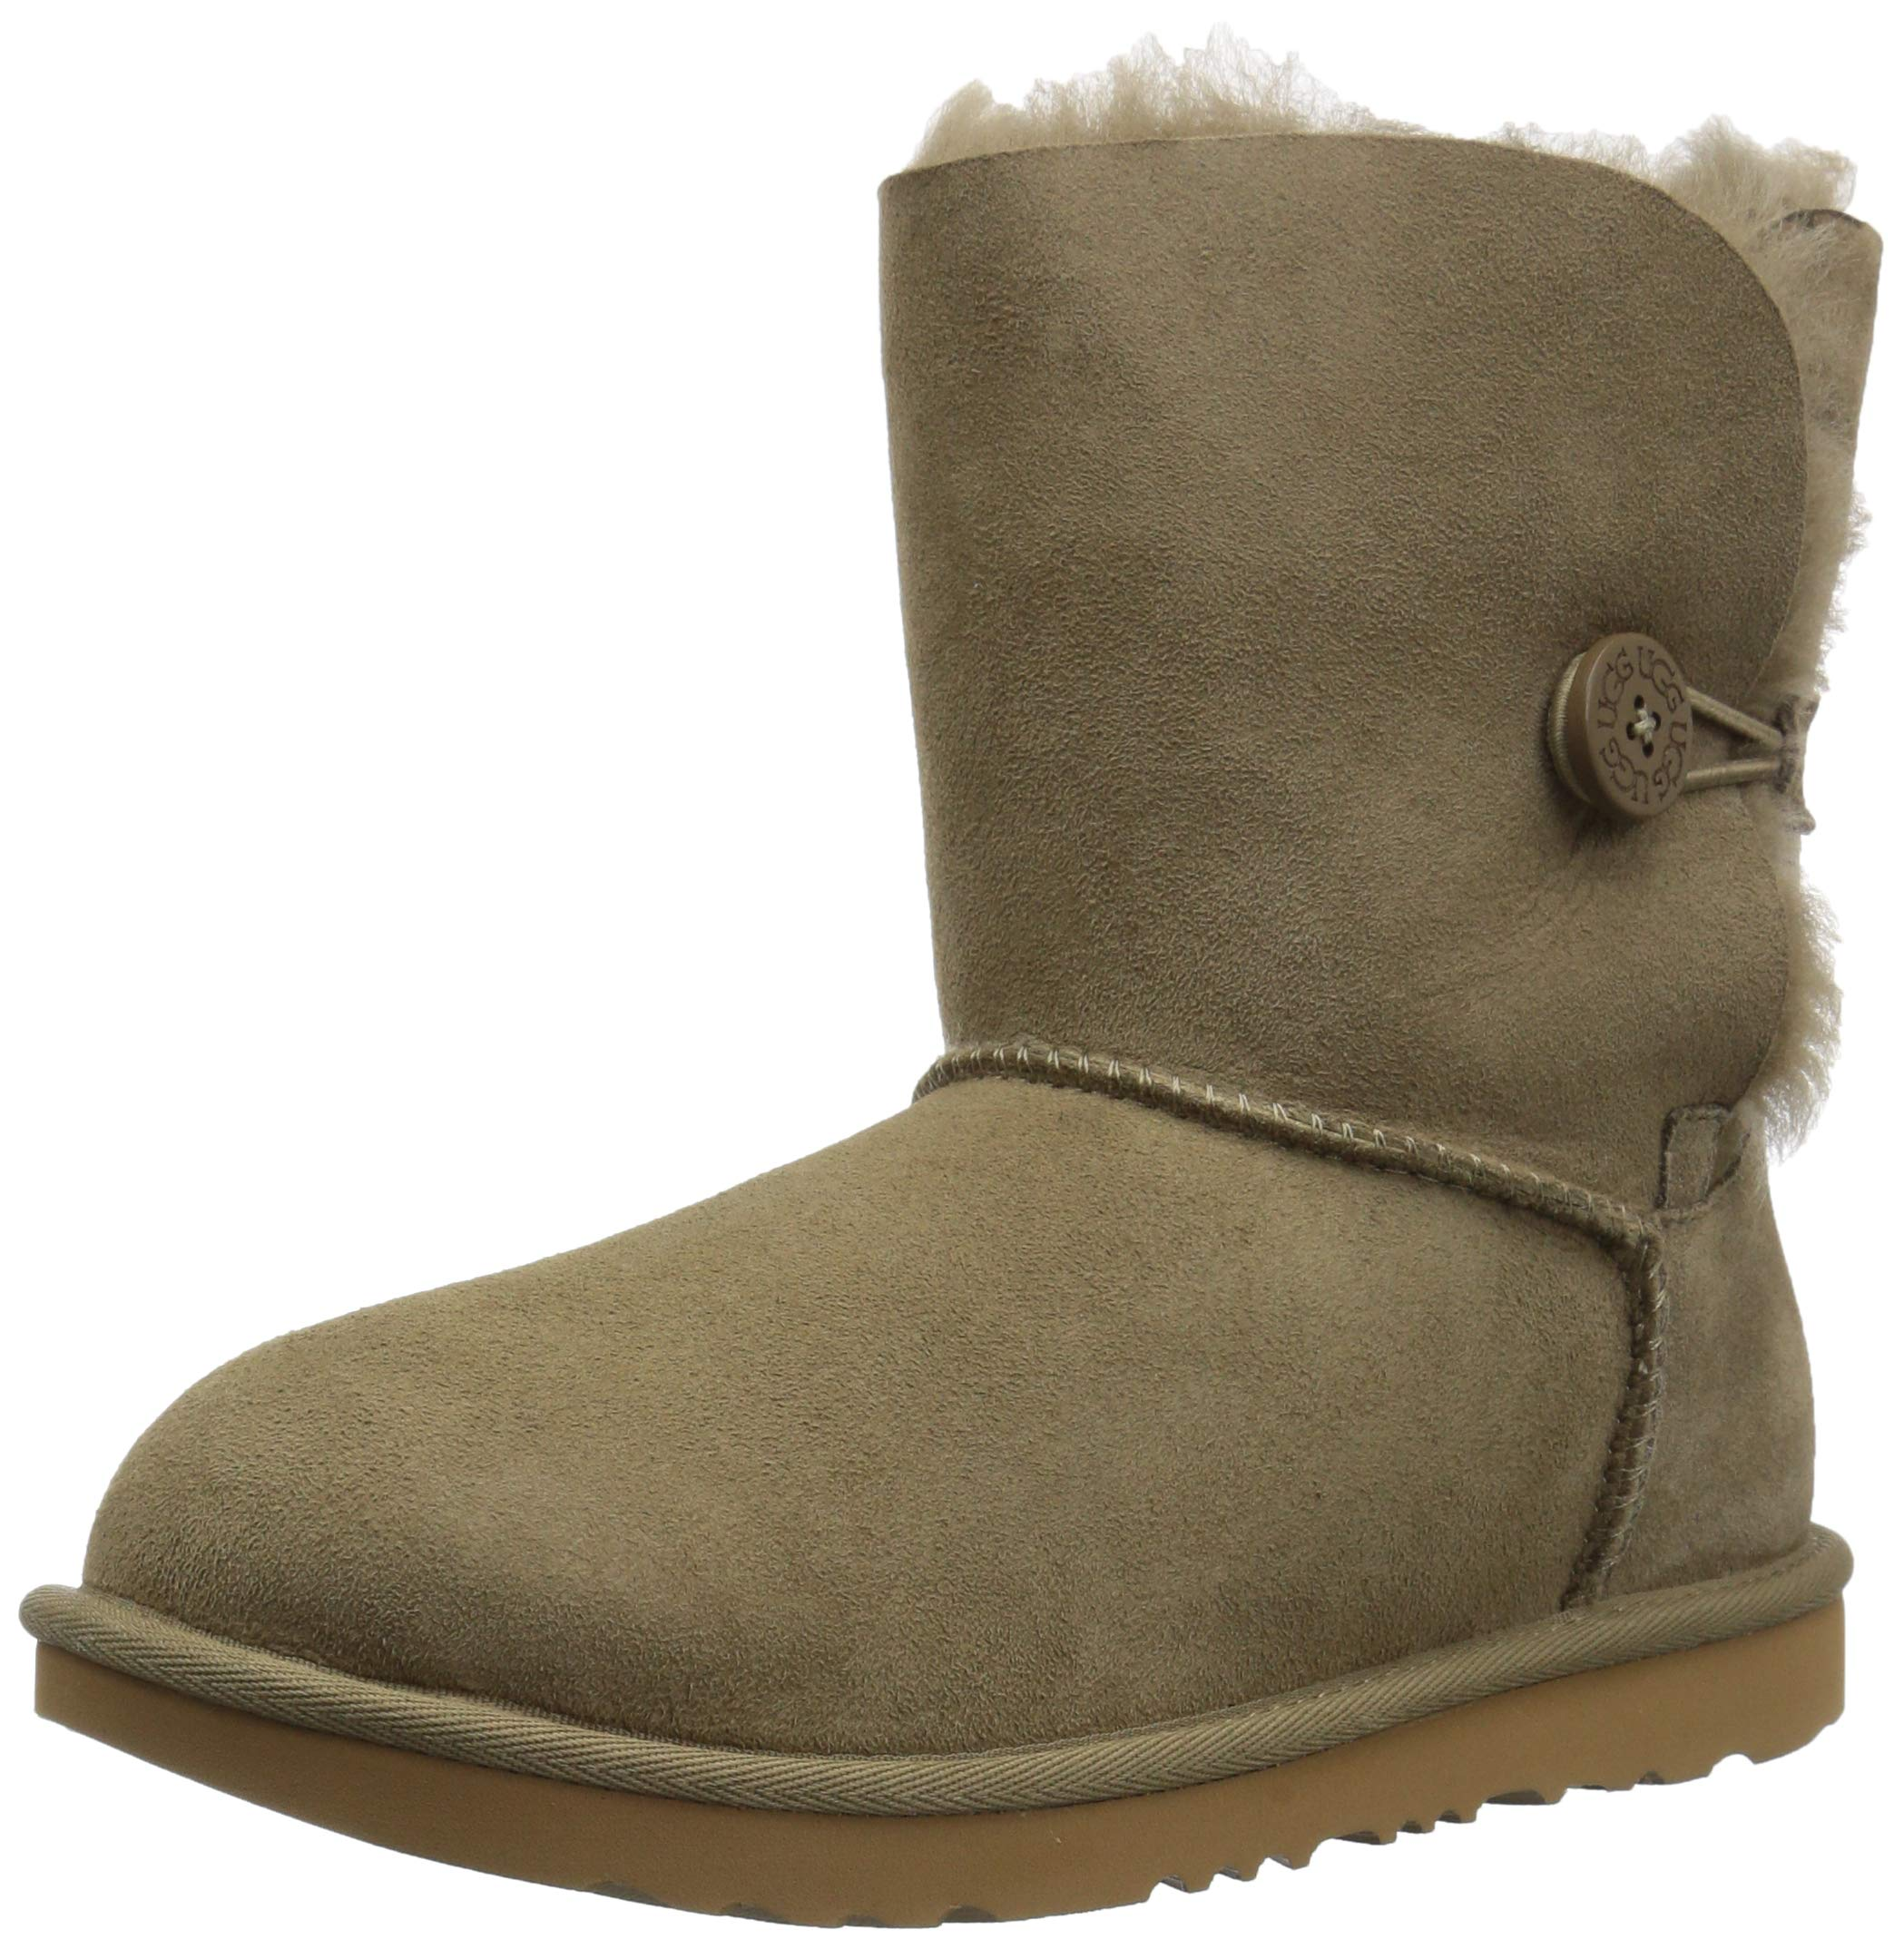 UGG Unisex K Bailey Button II Fashion Boot, Antilope, 13 M US Little Kid